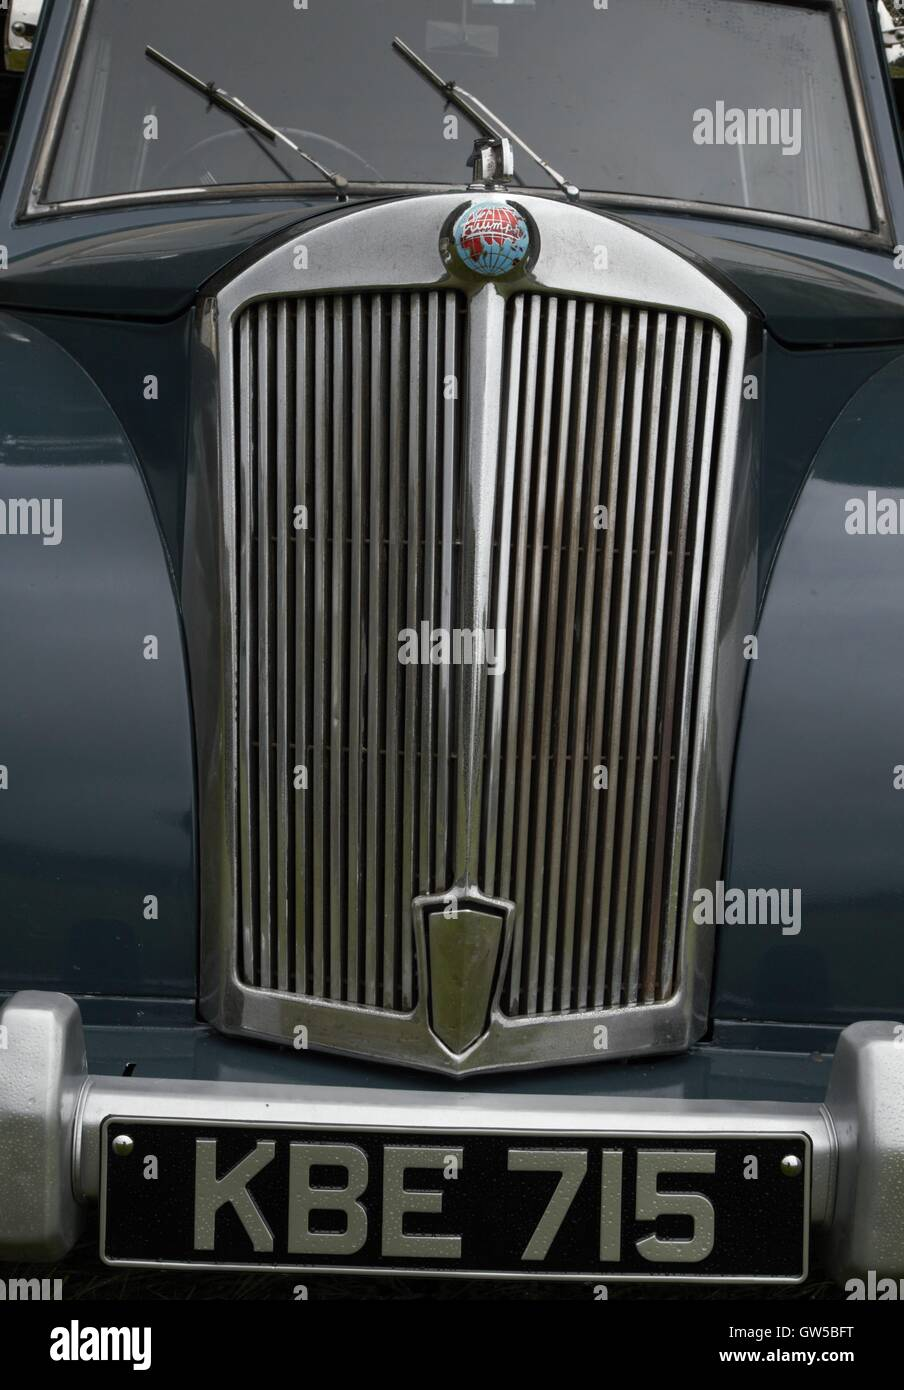 Triumph Mayflower Frontgrill. Stockbild